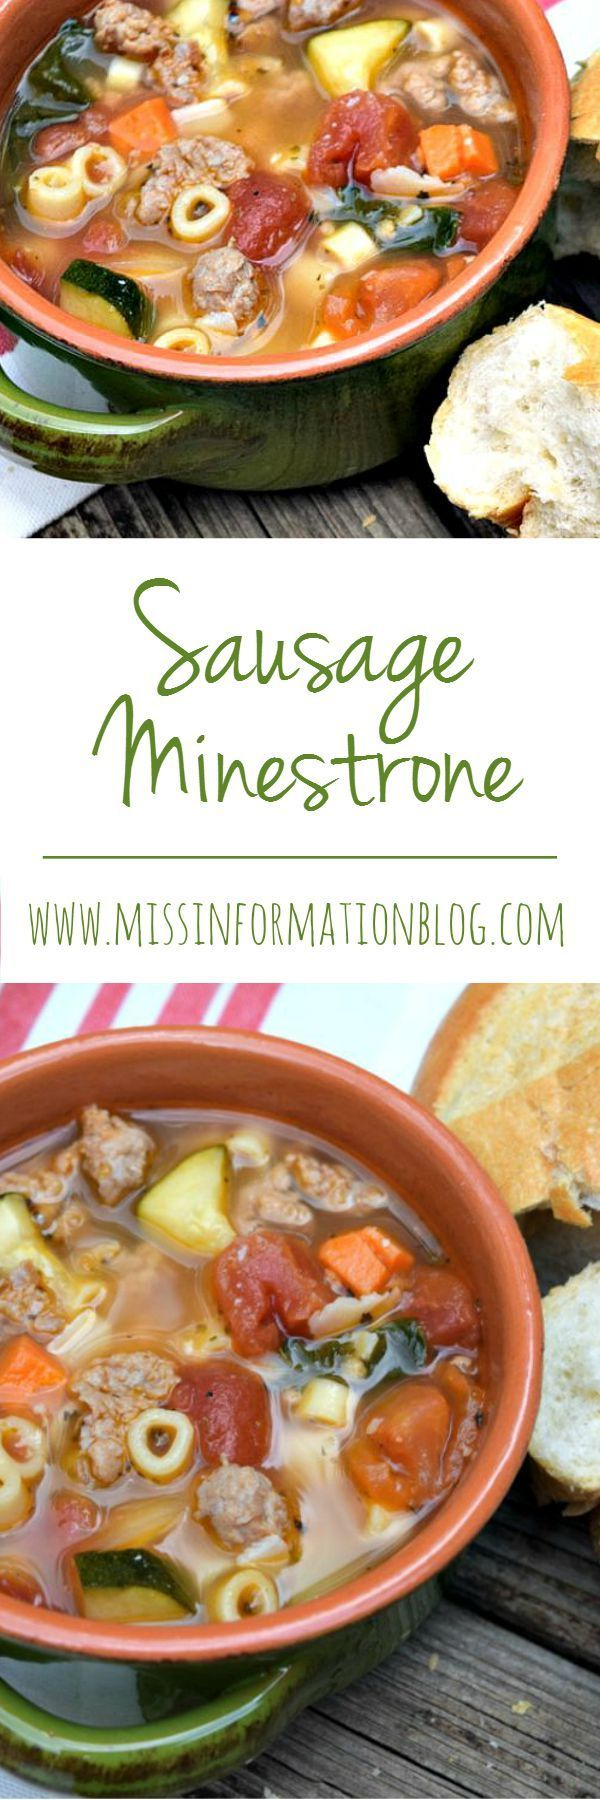 The Best Recipe for Minestrone Soup made with Shady Brooke Farms Italian Sausage and lots of yummy veggies. Includes instructions for stove top or crockpot. Pin it to make it now you won't be sorry our family loves it!